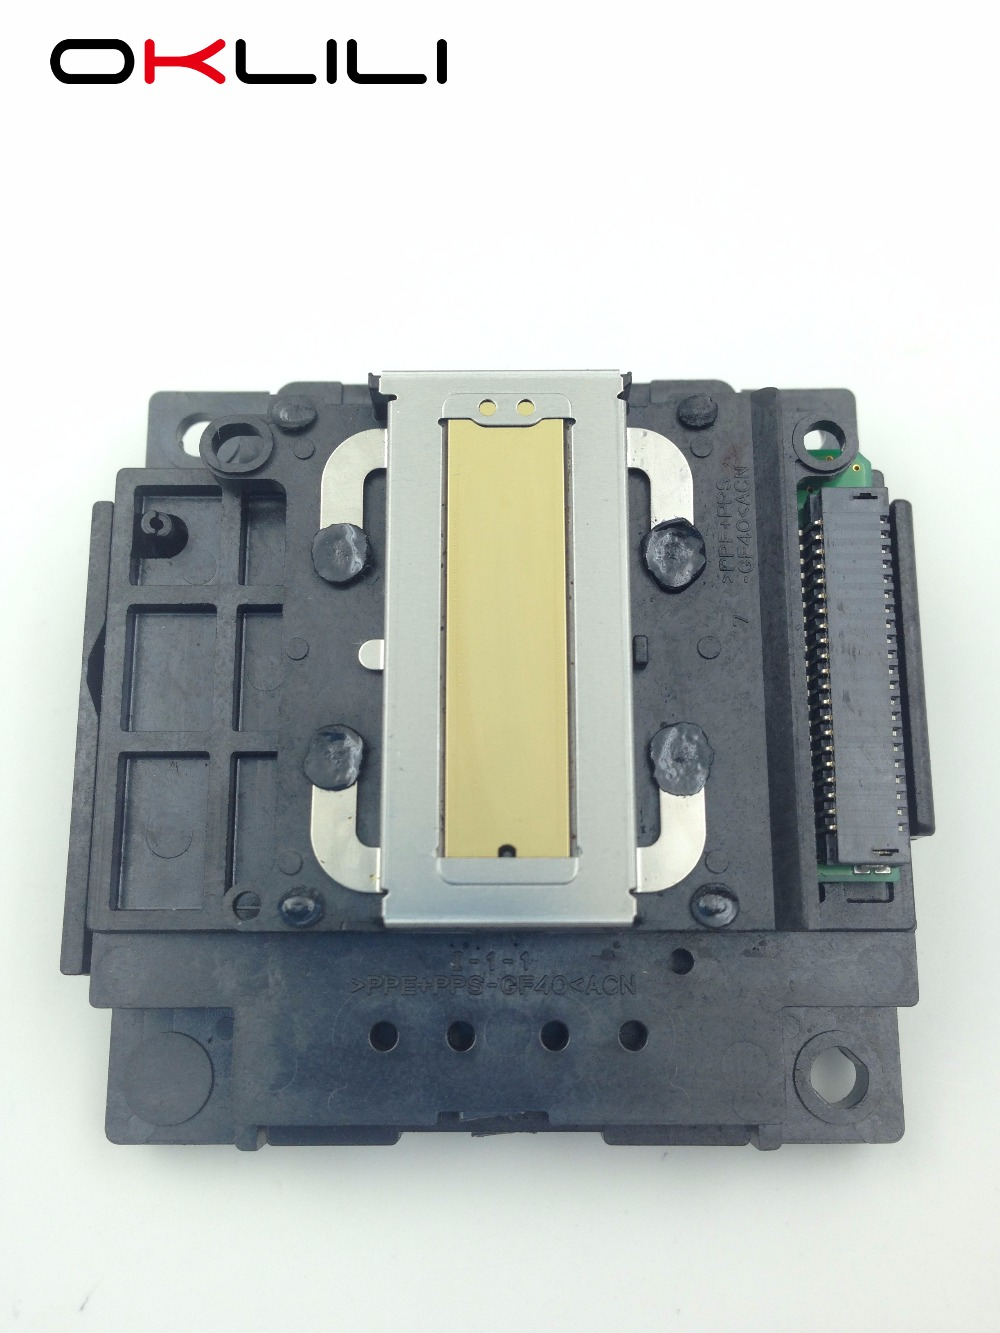 FA04010 FA04000 Printhead Print Head for Epson L120 L210 L300 L350 L355 L550 L555 L551 L558 XP-412 XP-413 XP-415 XP-420 XP-423 original new print head for epson l120 l210 l220 l300 l335 l350 l355 l365 l381 l455 l550 l555 l551 xp300 xp400 xp405 printhead